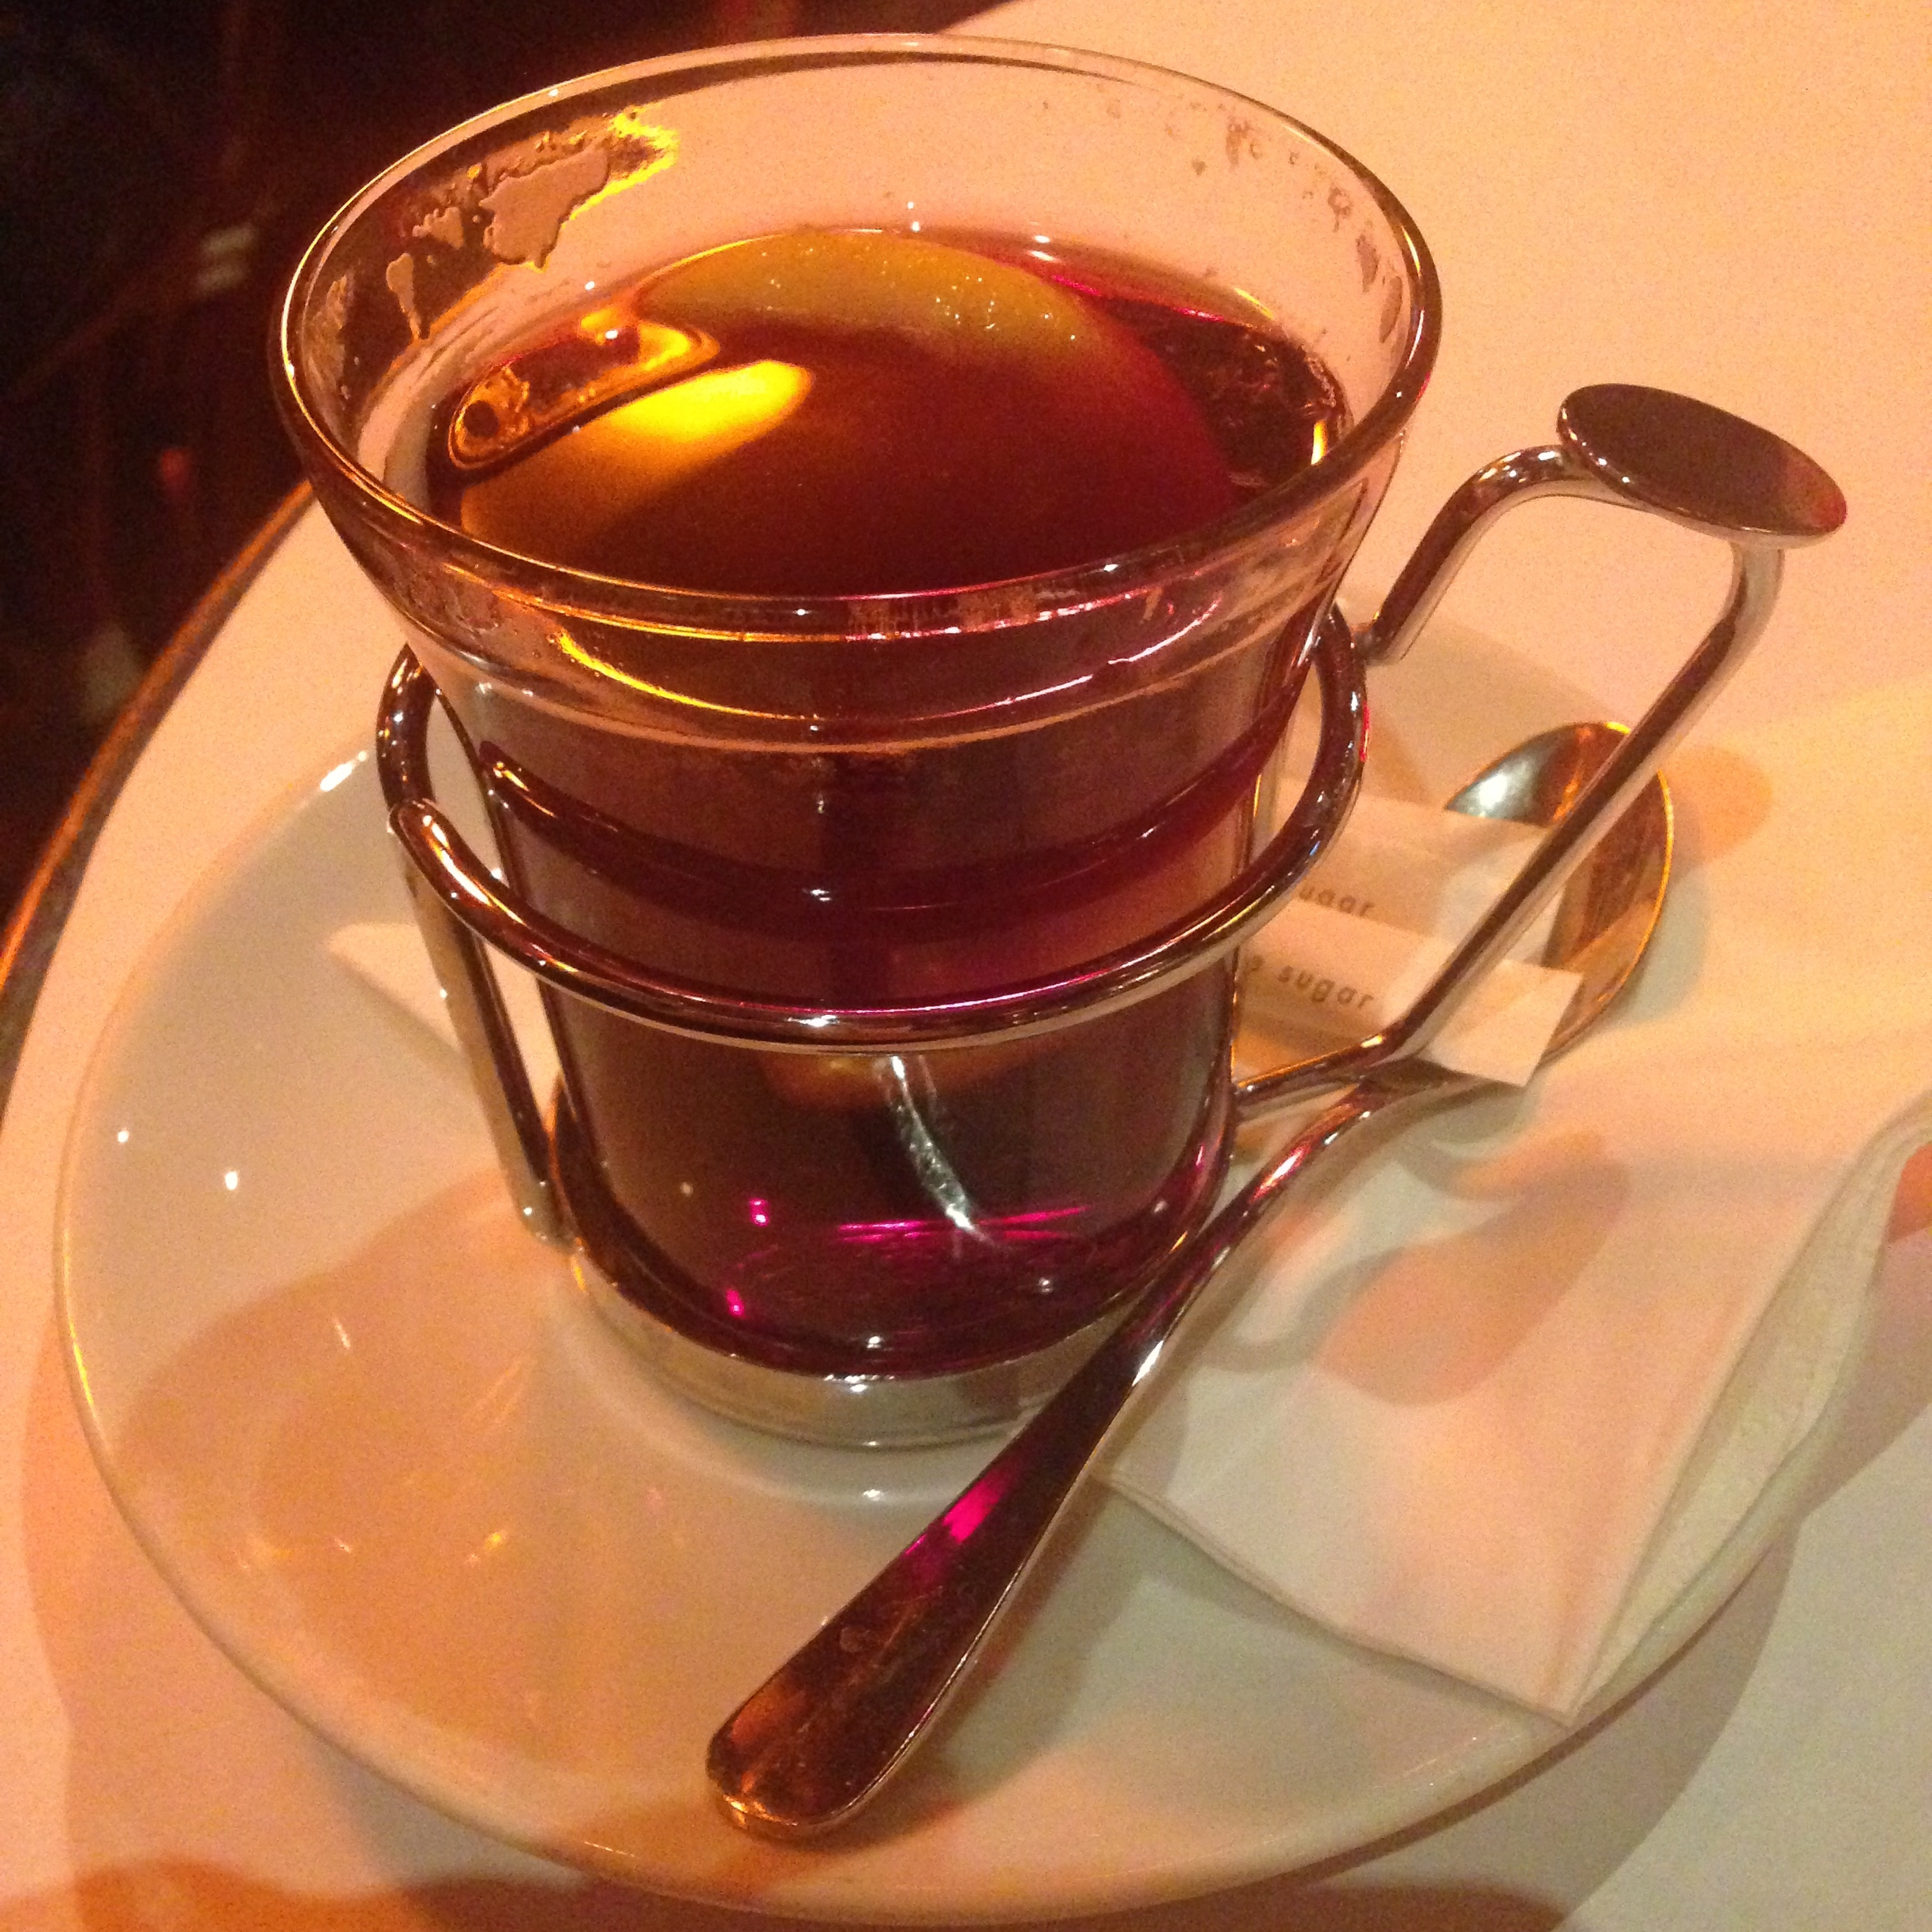 vin chaud (mulled hot wine) - we enjoyed many a cup of this!